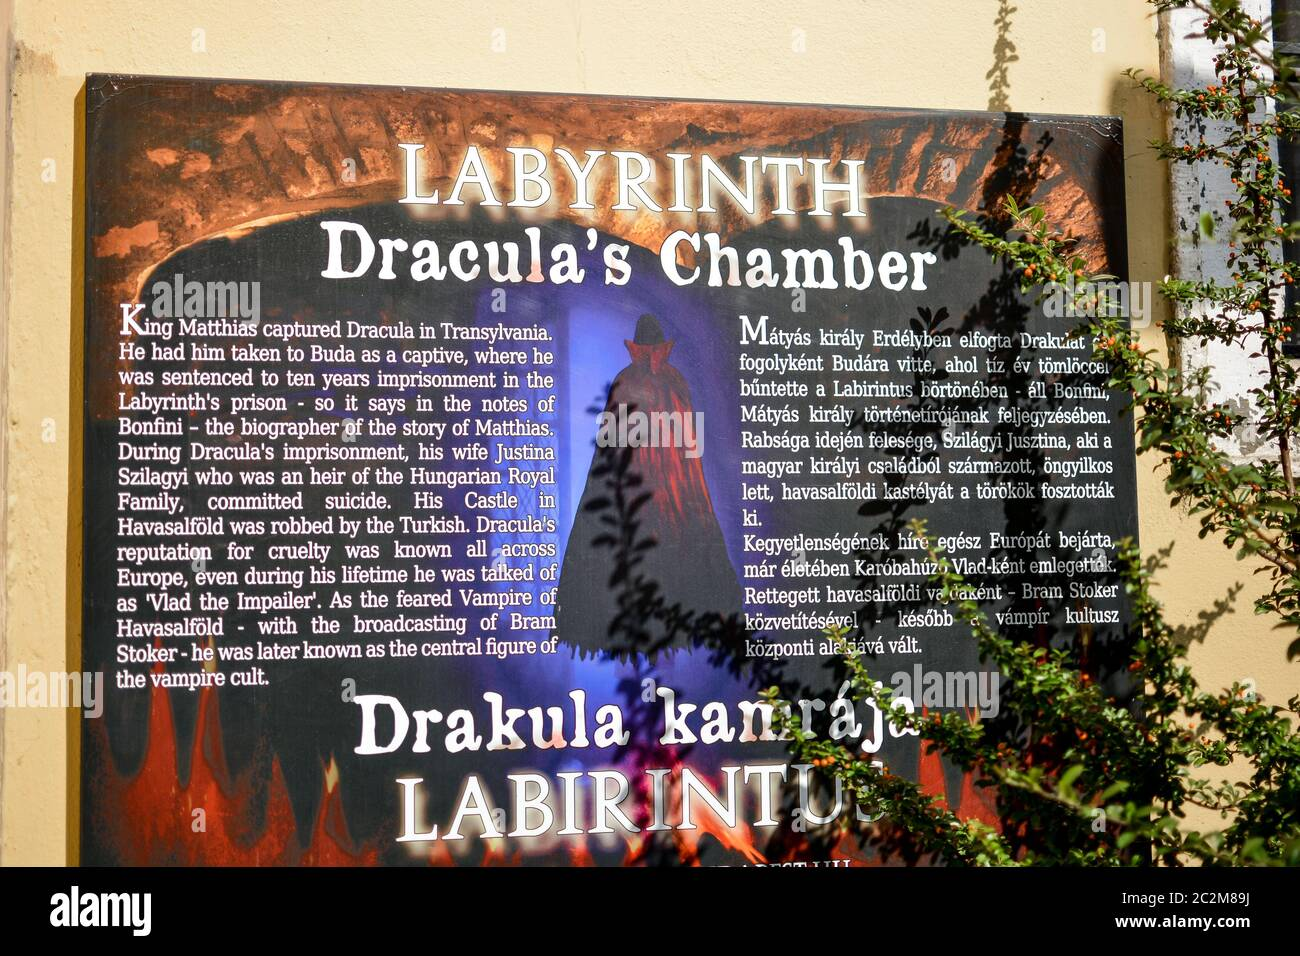 Sign outside the entrance to Dracula's Chamber, inside the Buda Castle Labyrinth in Budapest Hungary. Stock Photo